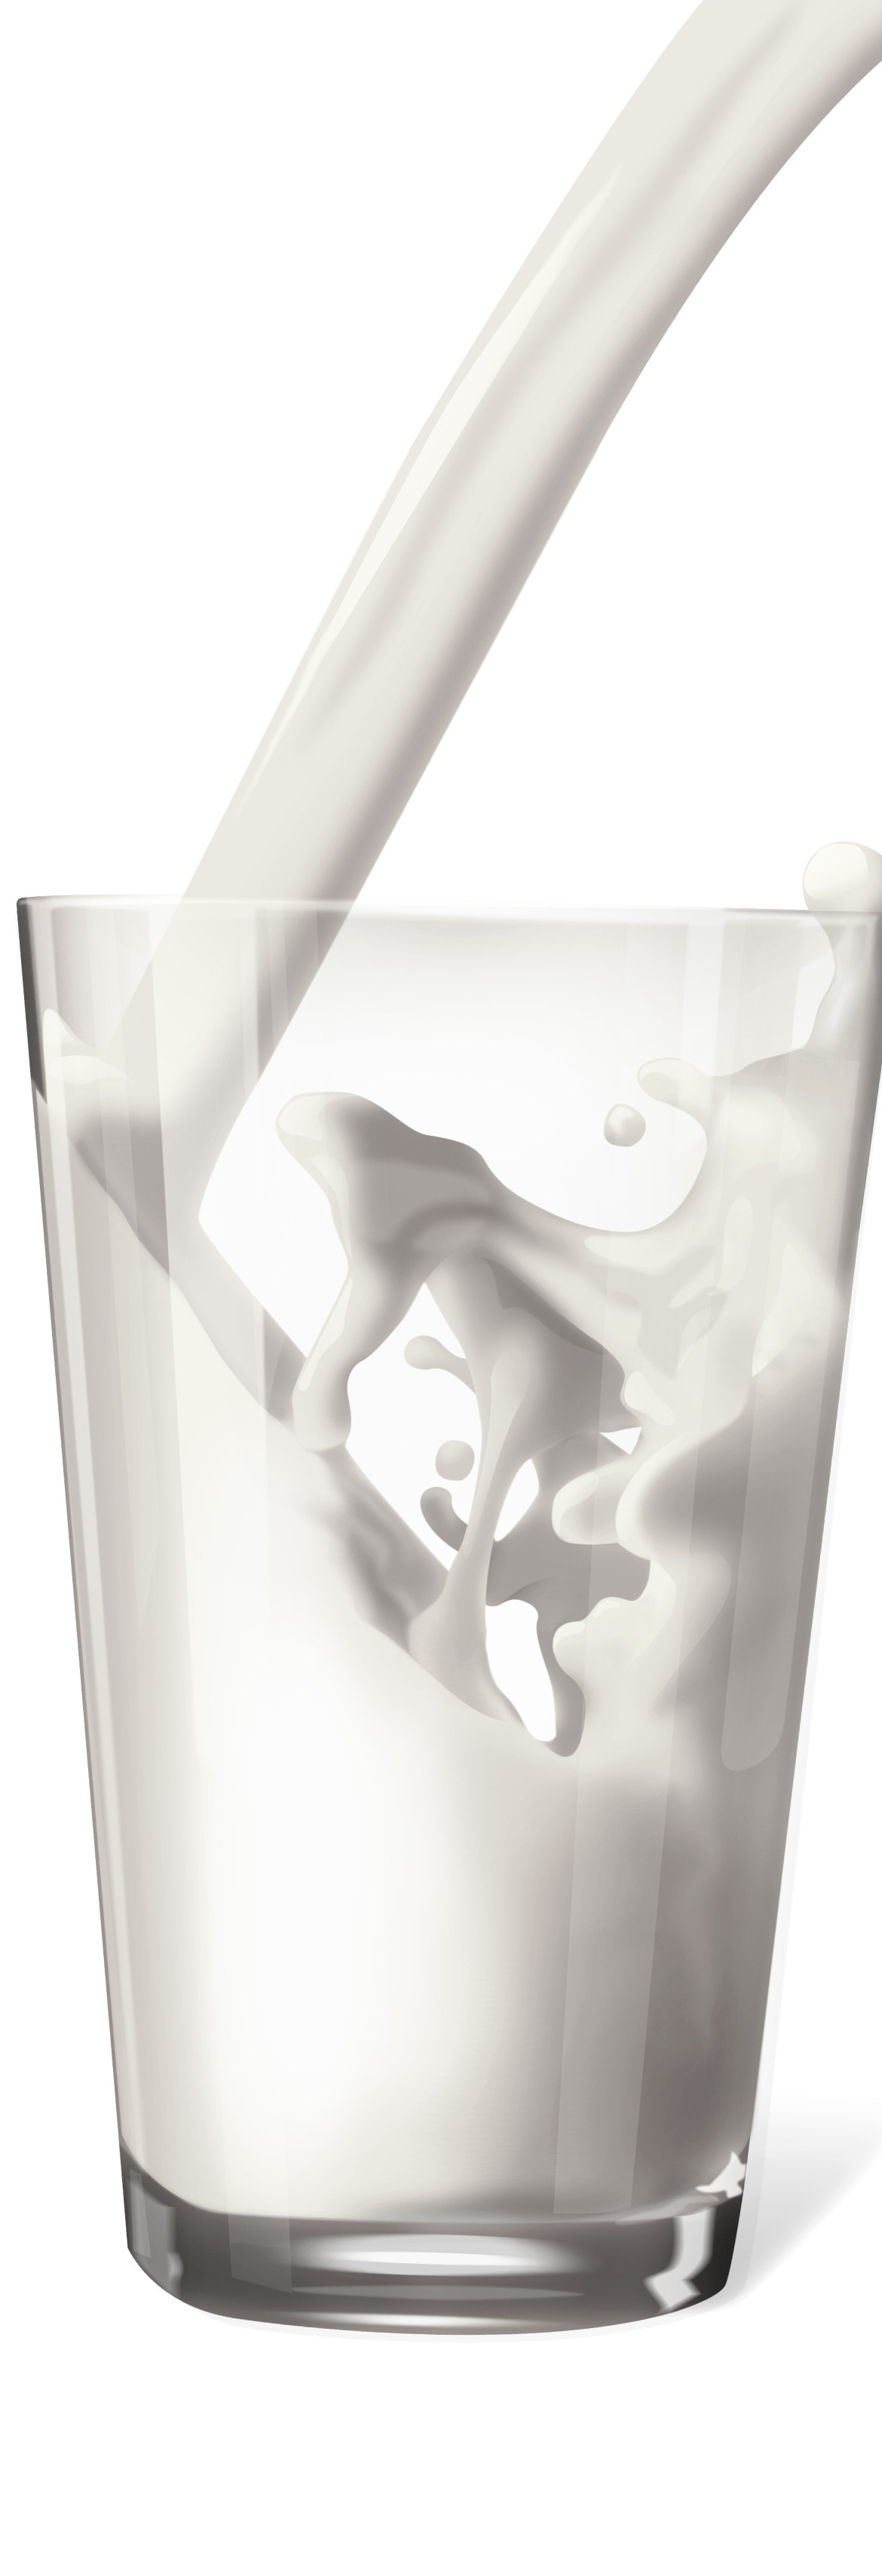 An image of a glass with milk being poured into it